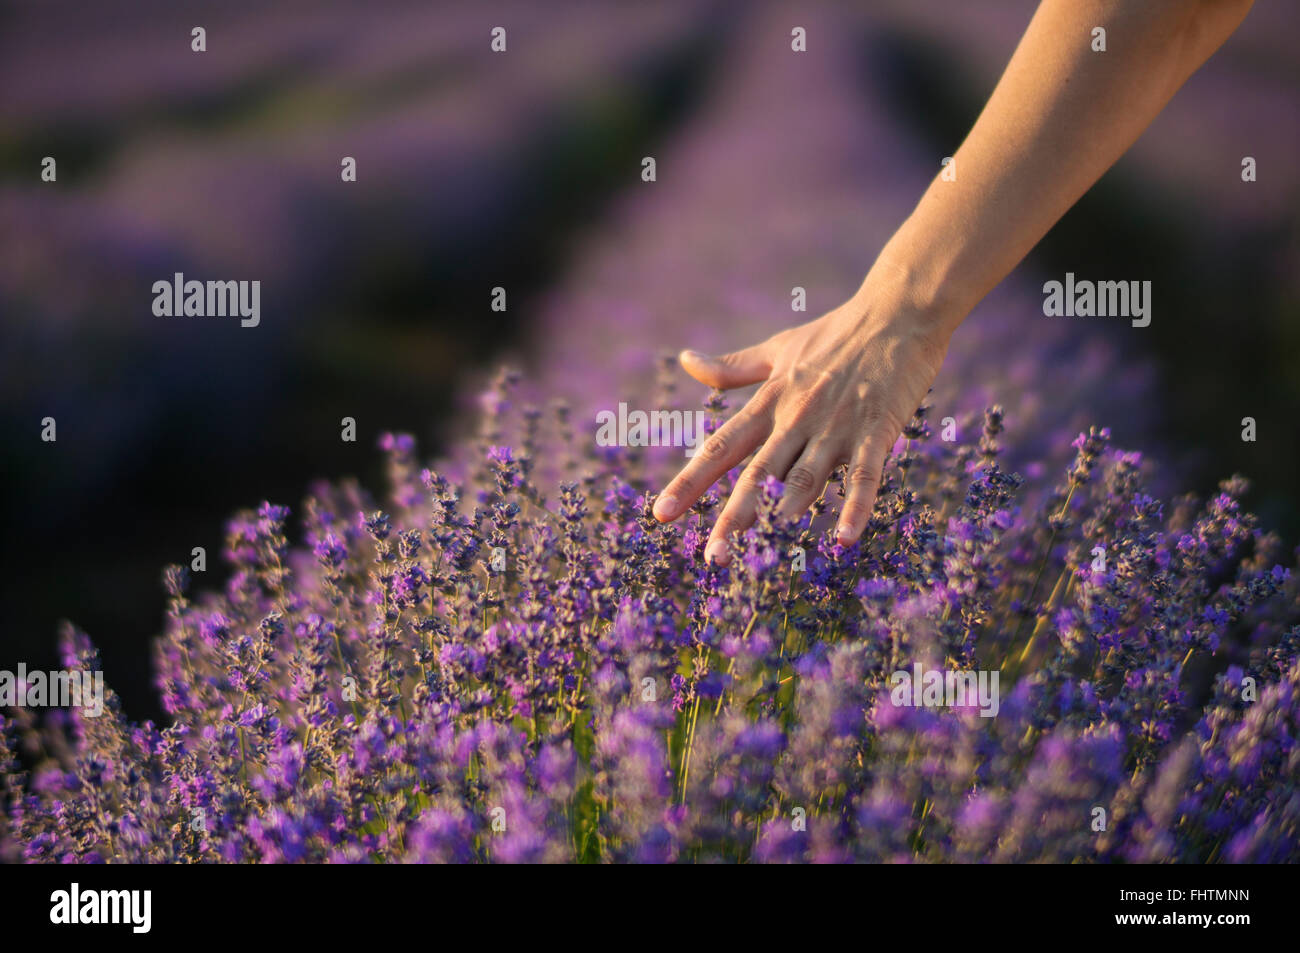 Female hand gently touching the tops of lavender bushes in bloom in a field of lavender. - Stock Image